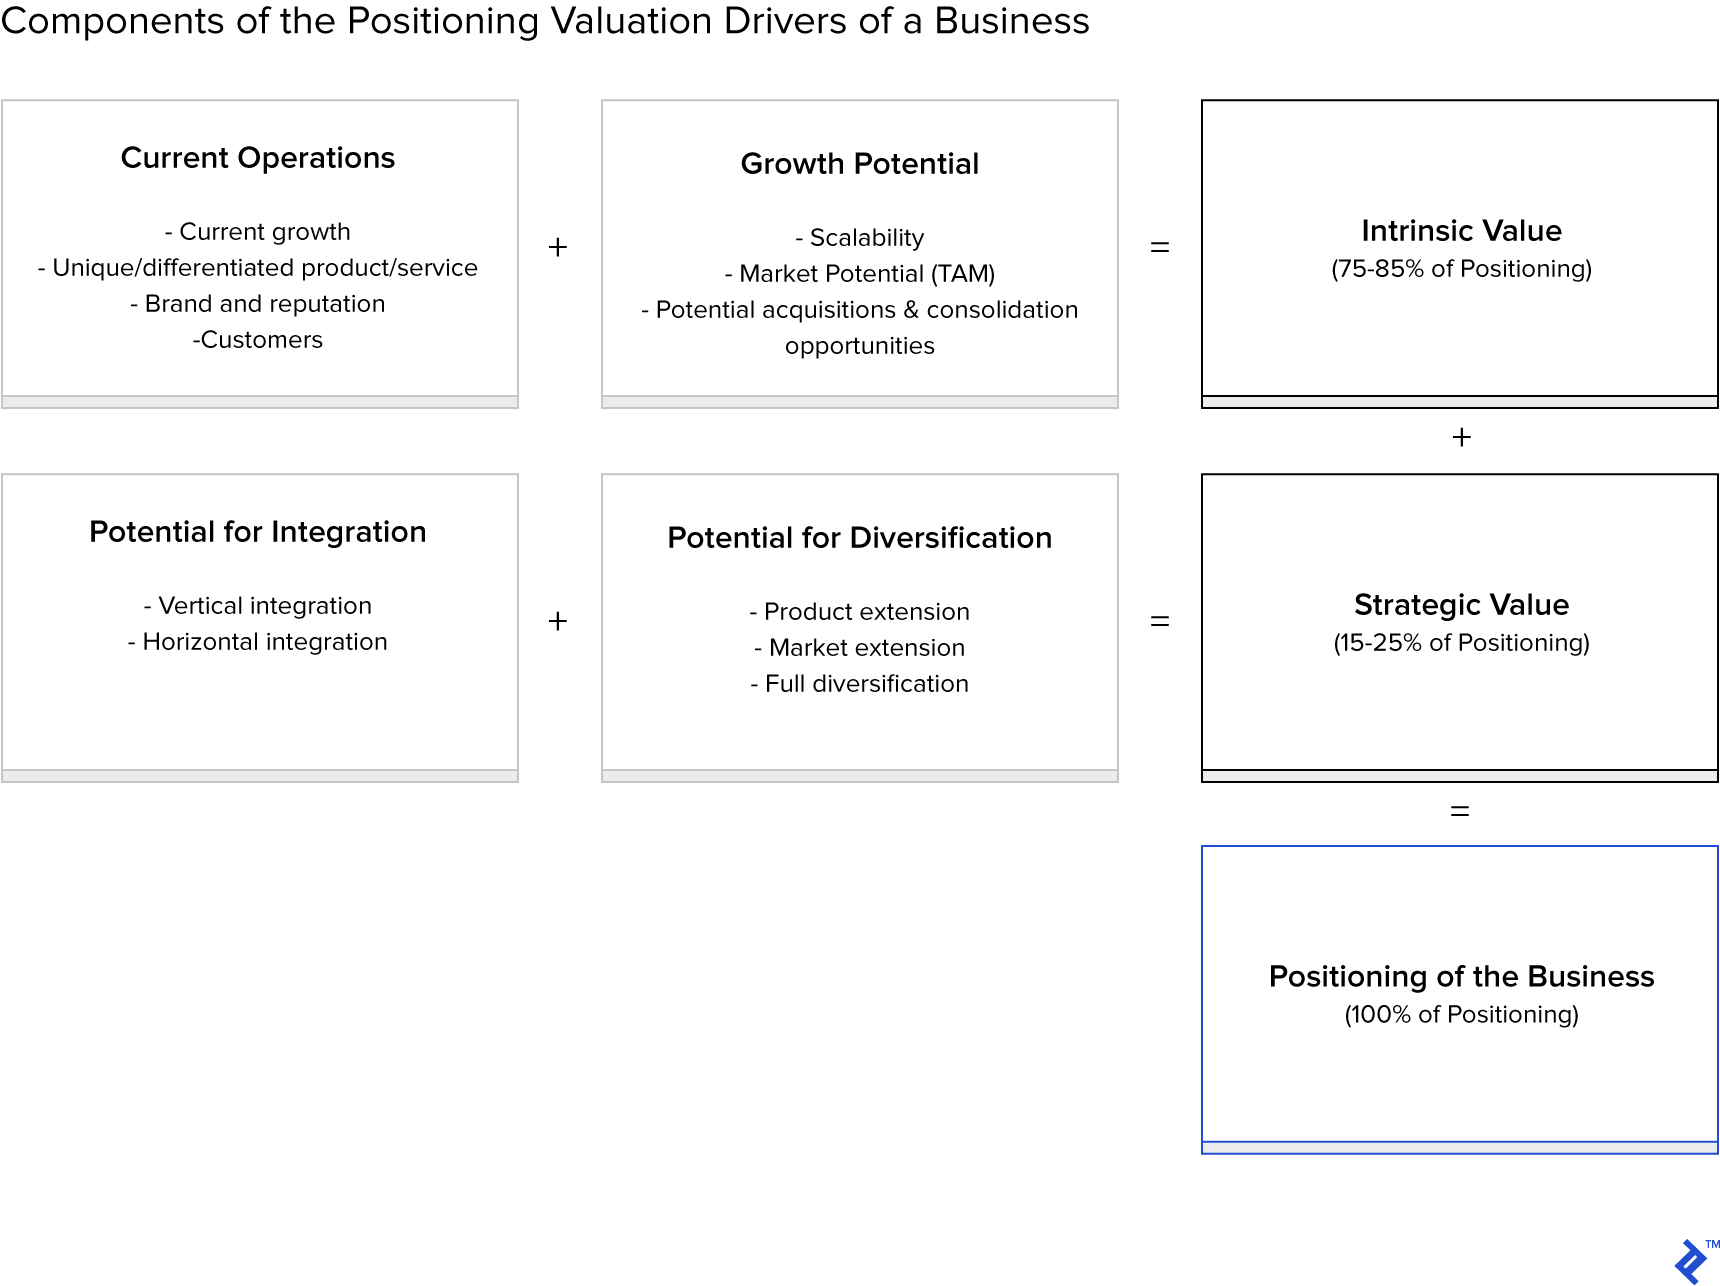 Components of the positioning valuation drivers of a business